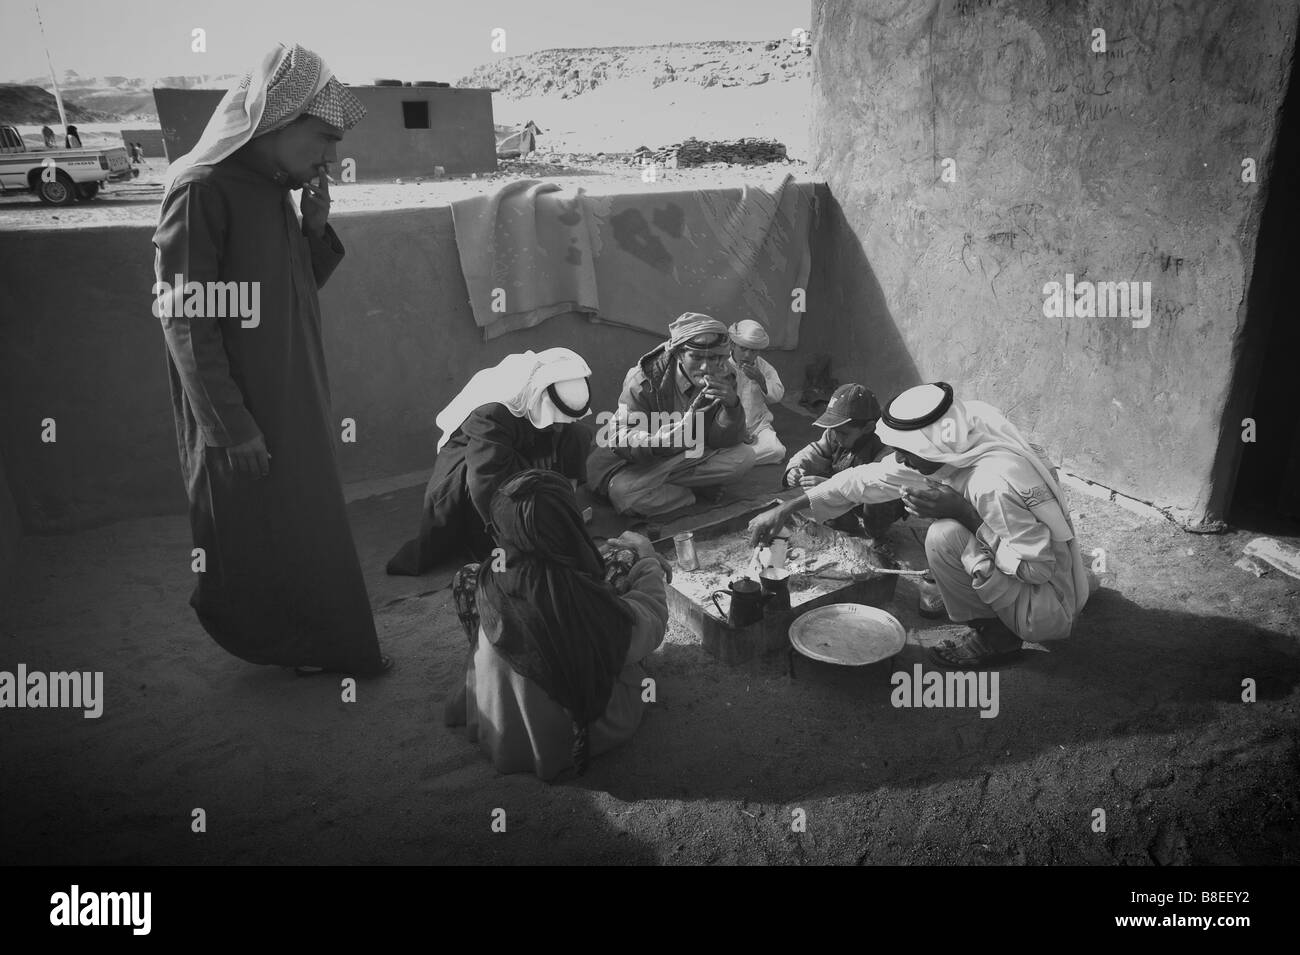 A group of Bedouins eat a meal outside their home in Egypt - Stock Image